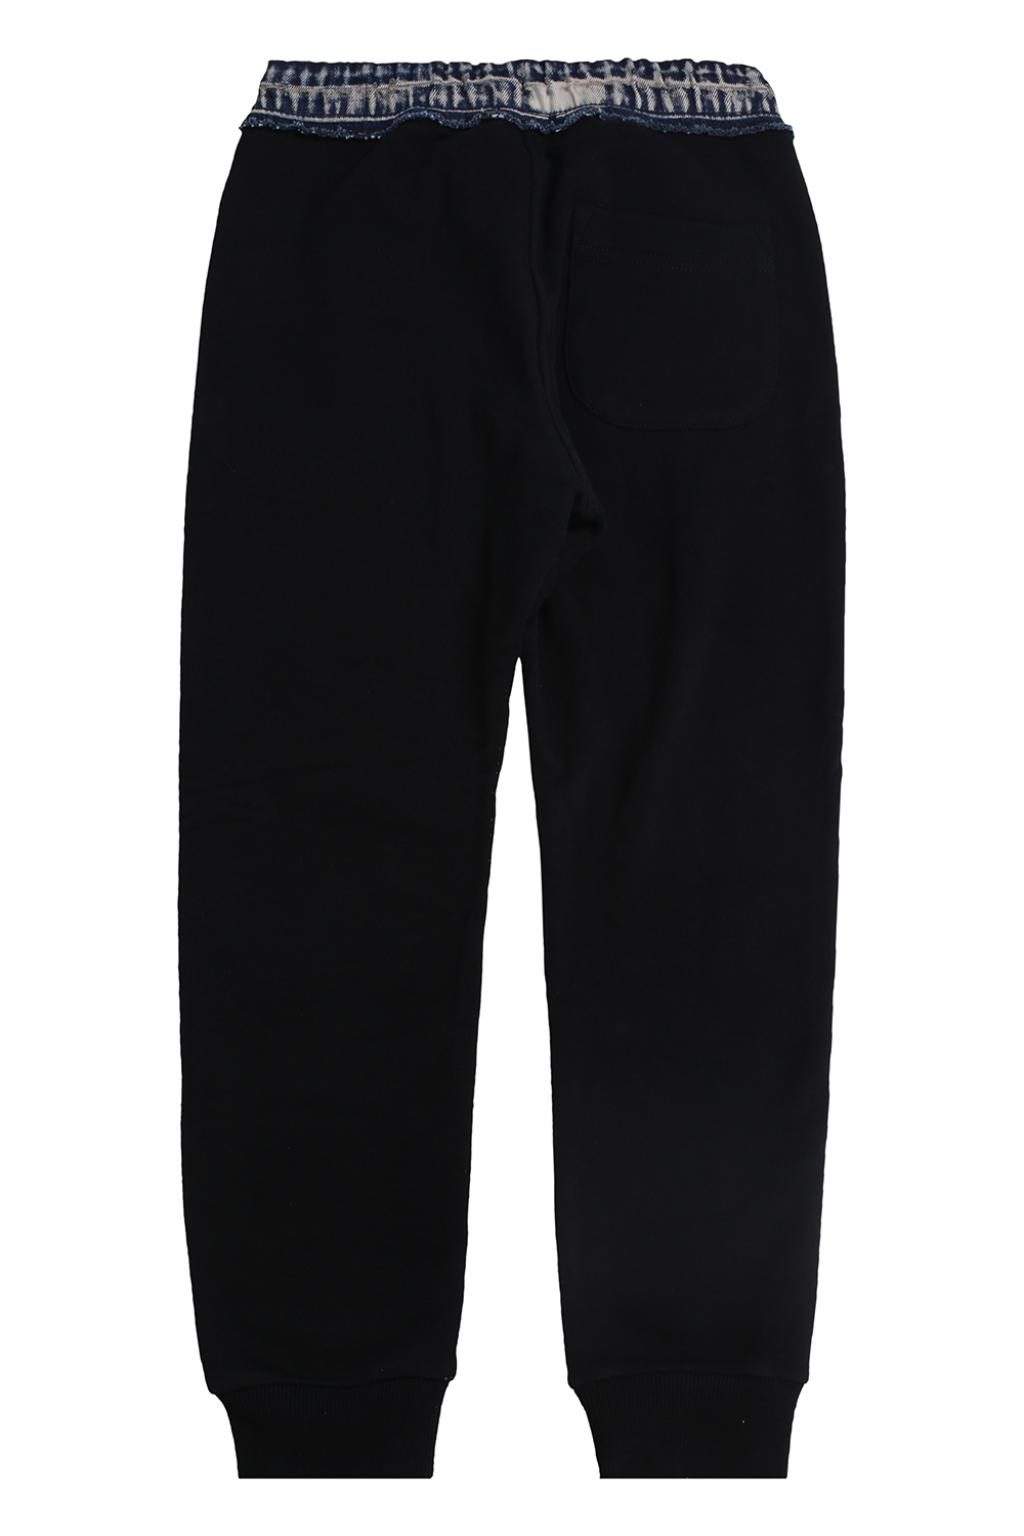 Diesel Kids Sweatpants